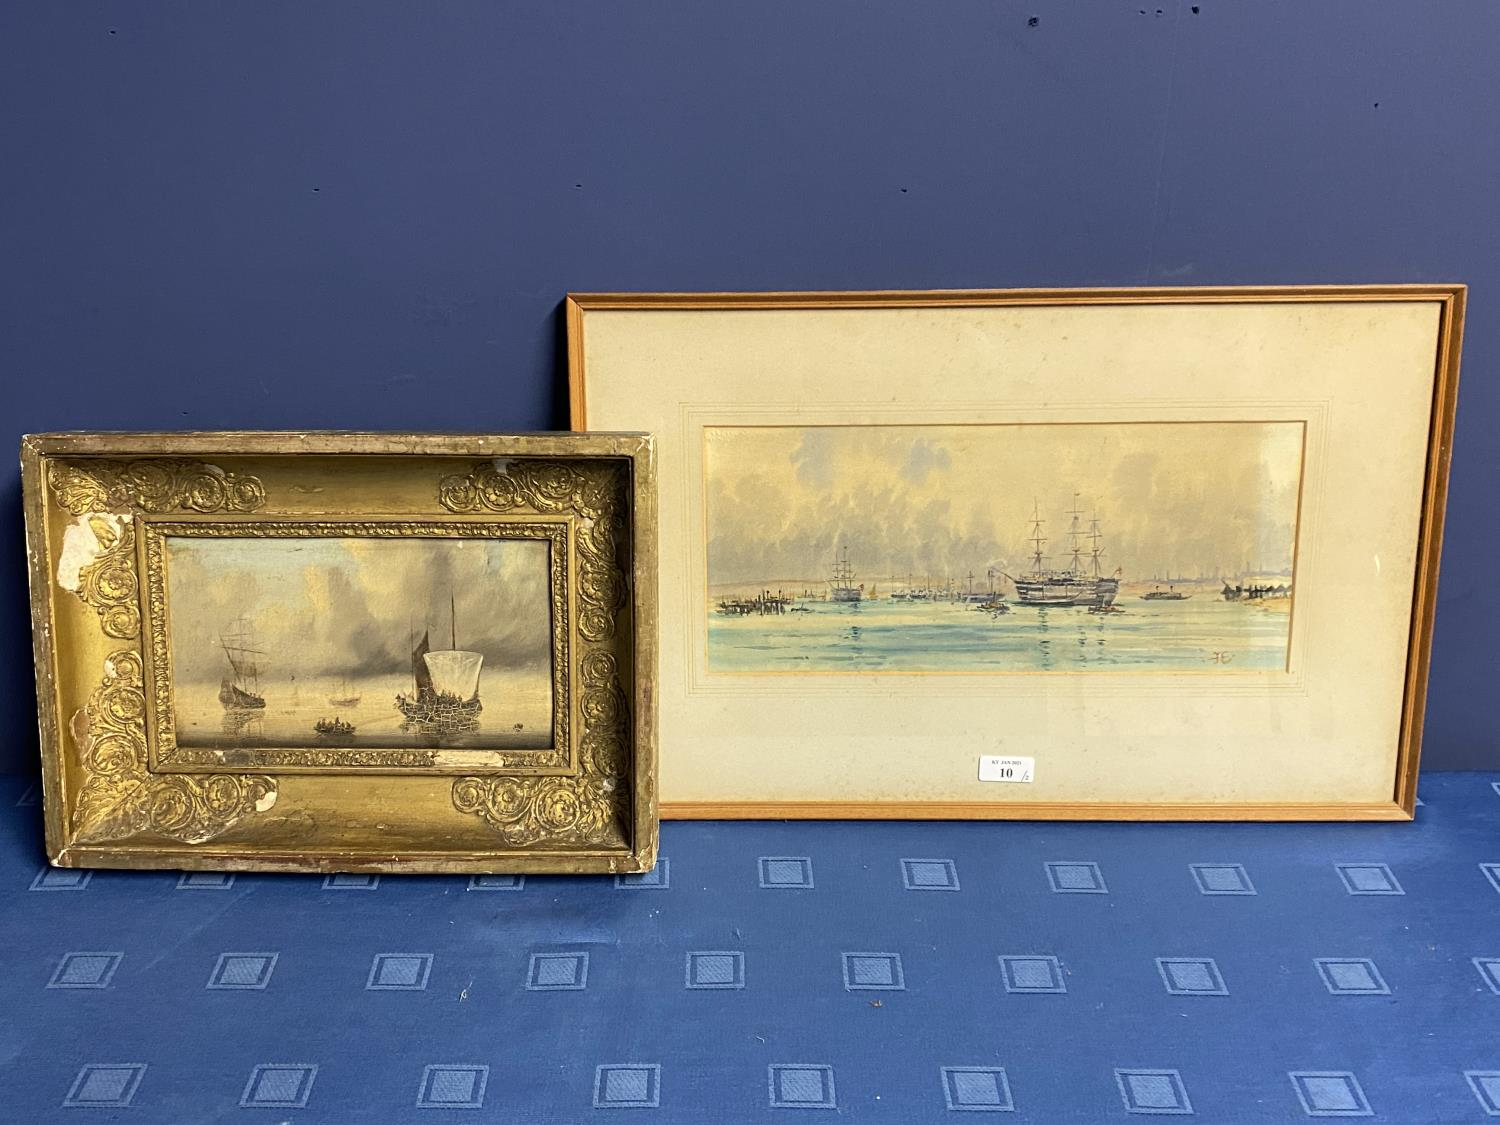 C19th watercolour, sailing ships, initial JE lower right, 16 x 37cm (condition, some tiny foxing - Image 2 of 16